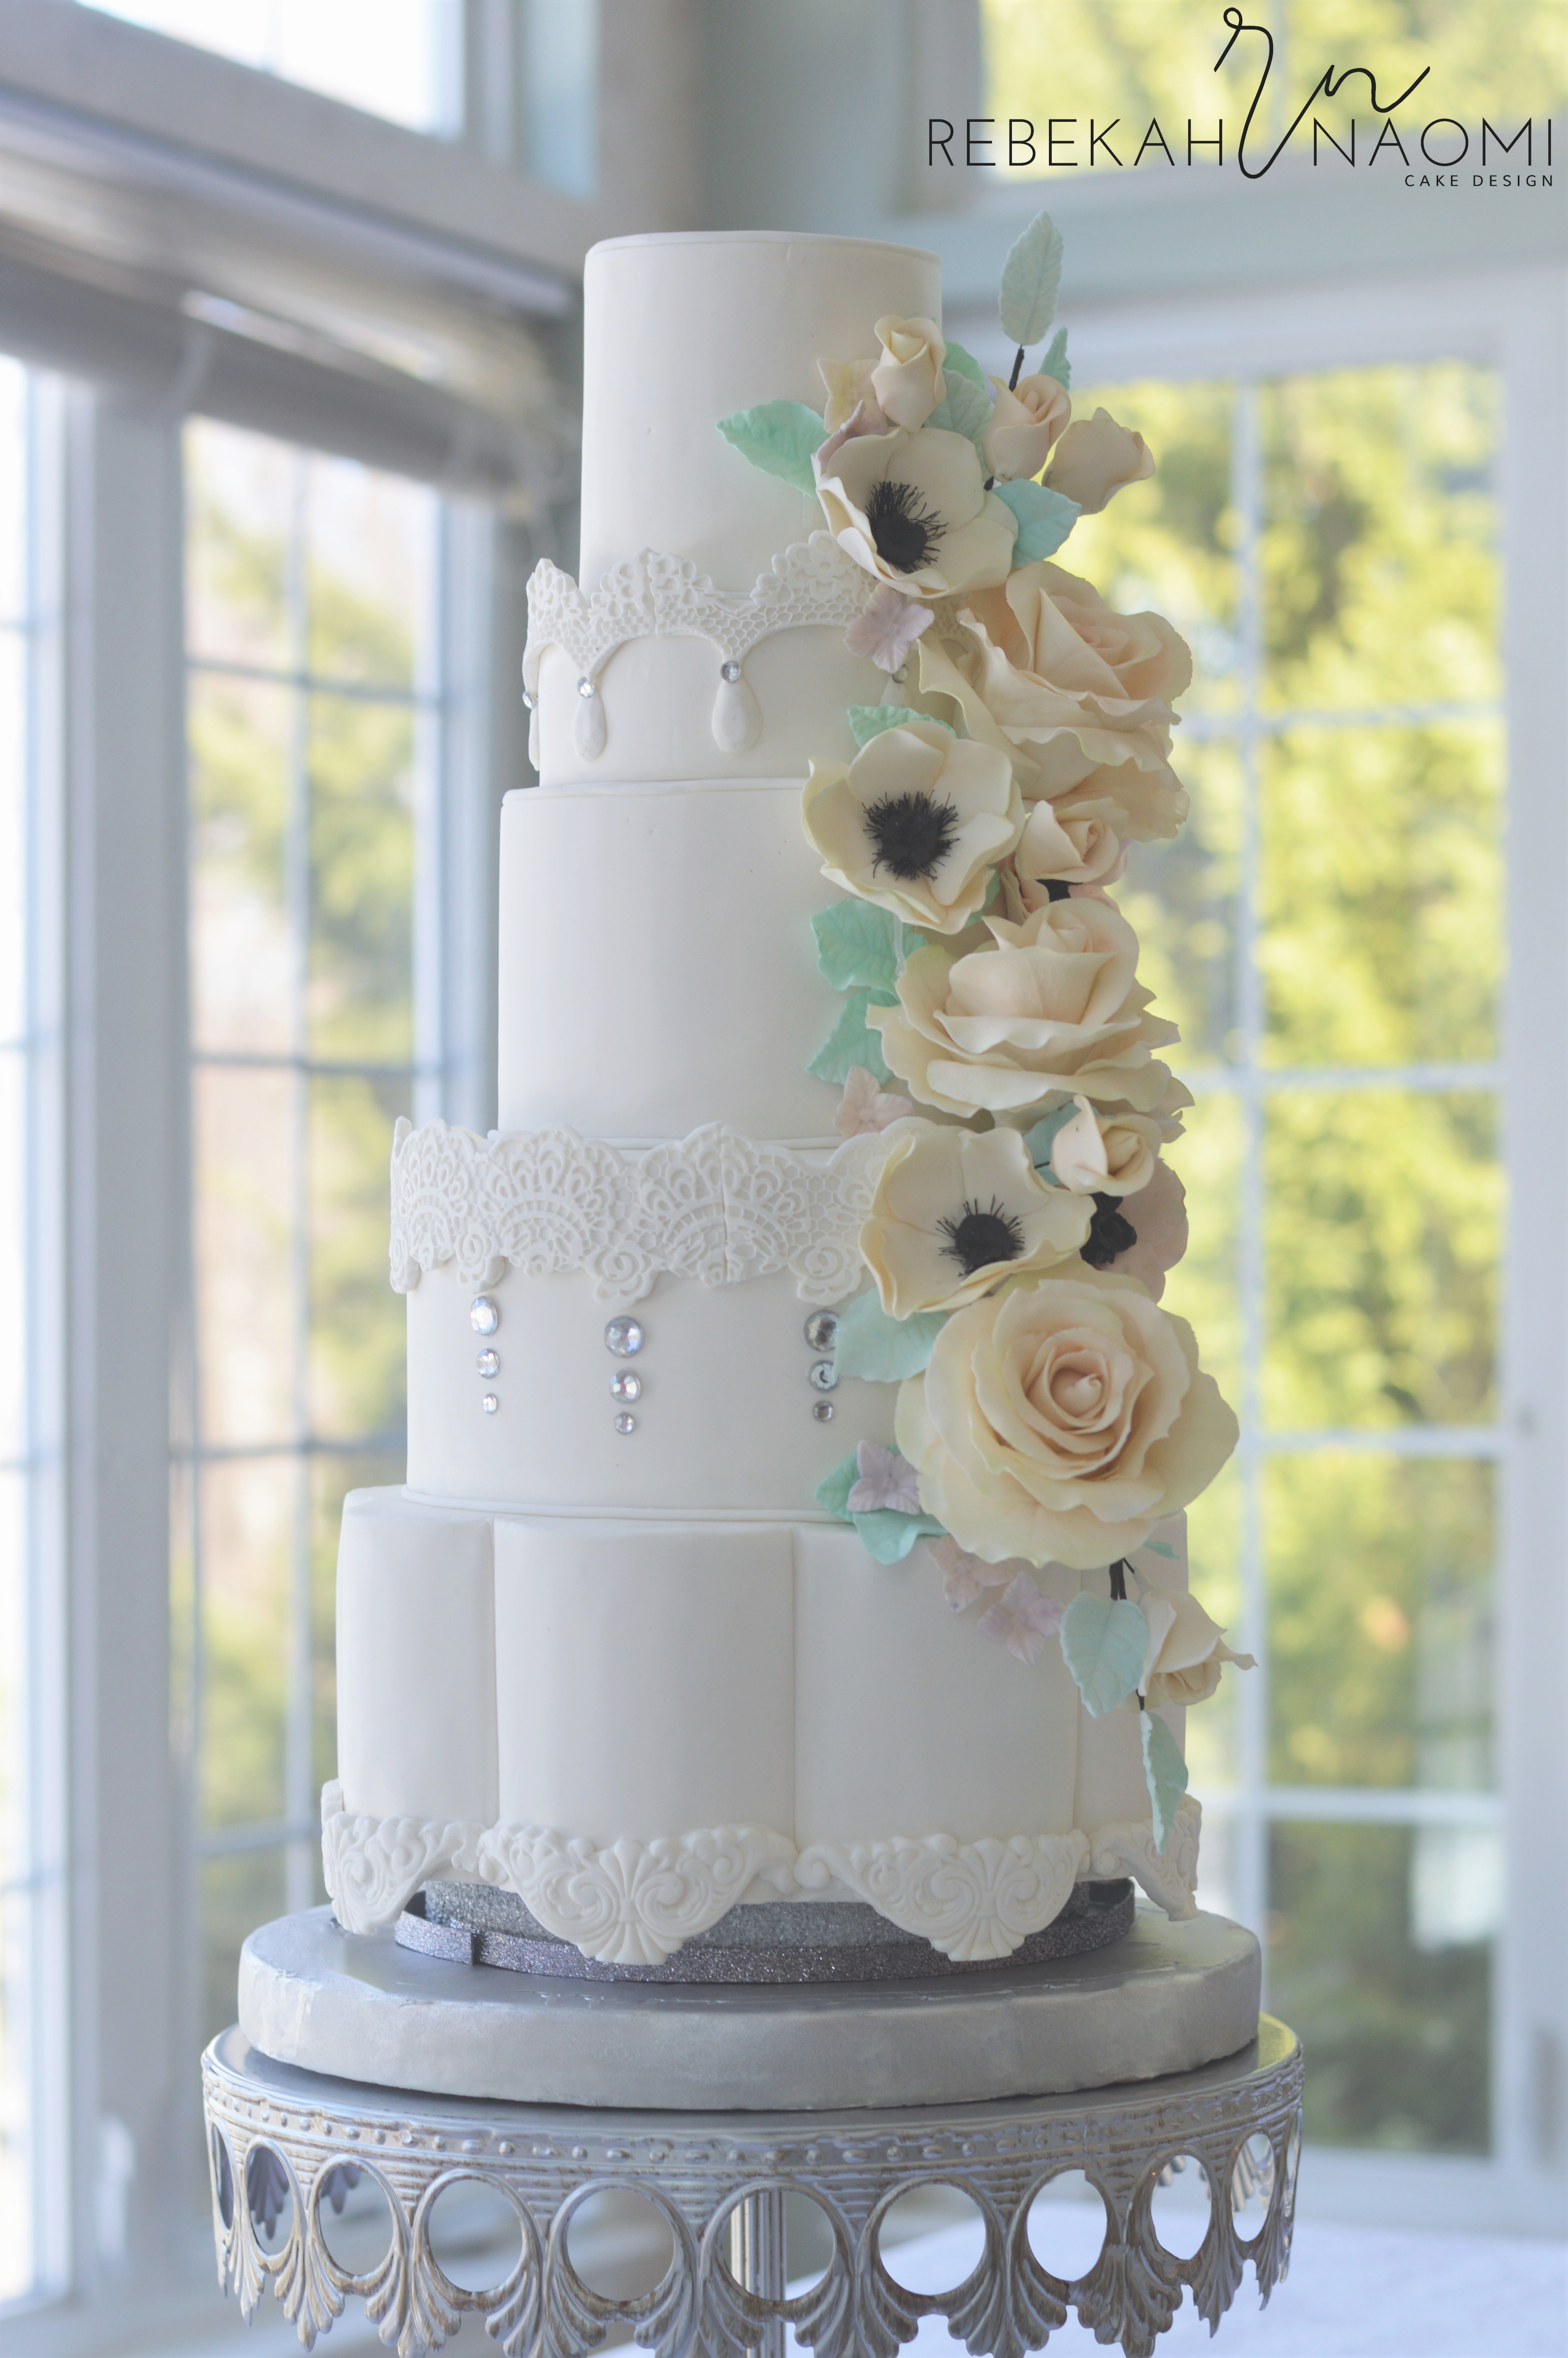 Winter Wedding Cake An all white wedding cake with a petal bottom tier and lace appliques. The cake features a floral cascade of roses and anemones in soft...